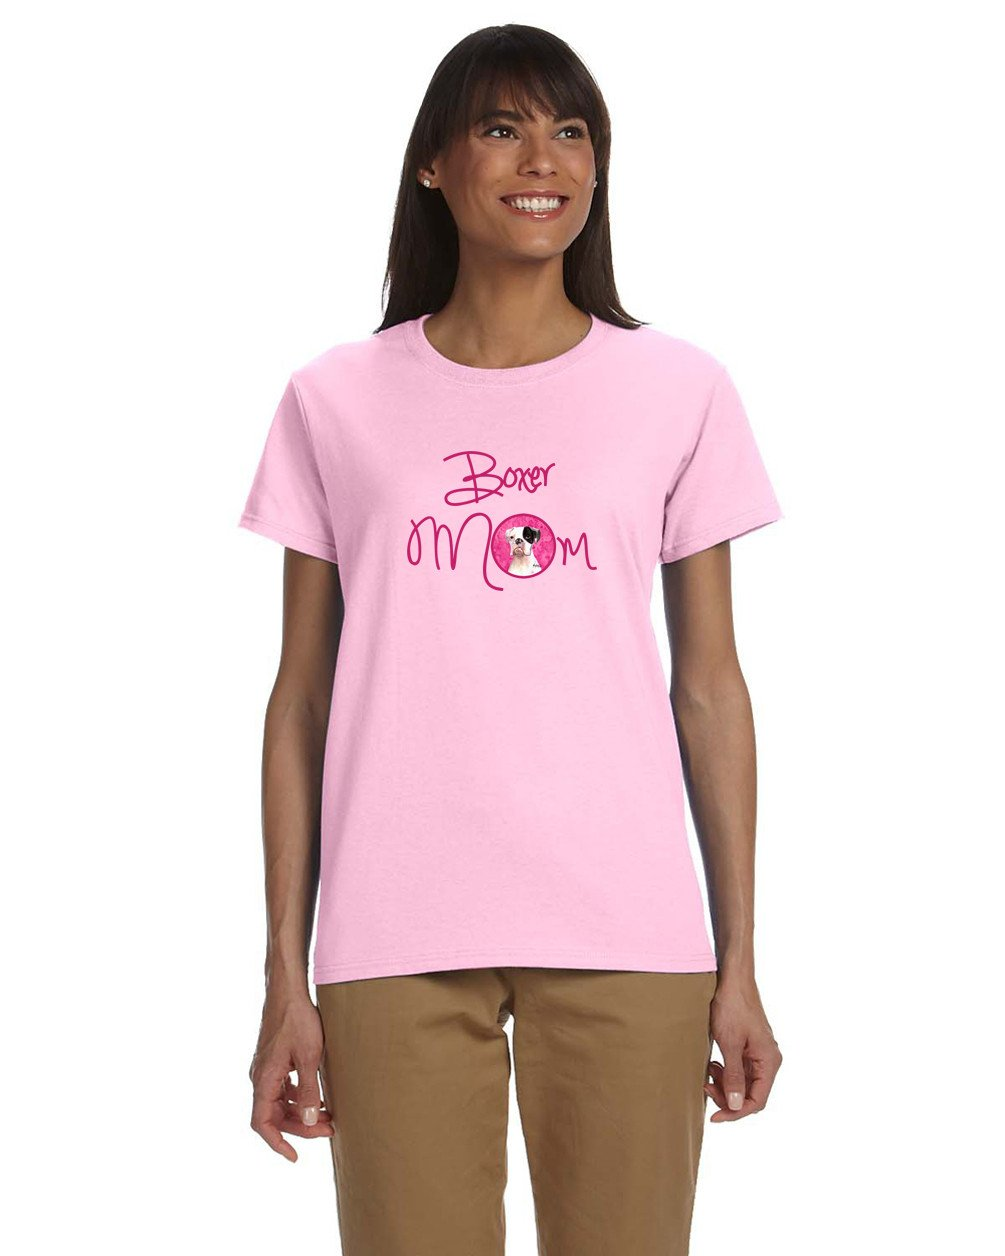 Pink Cooper the Boxer Mom T-shirt Ladies Cut Short Sleeve Small RDR3019PK-978-S by Caroline's Treasures